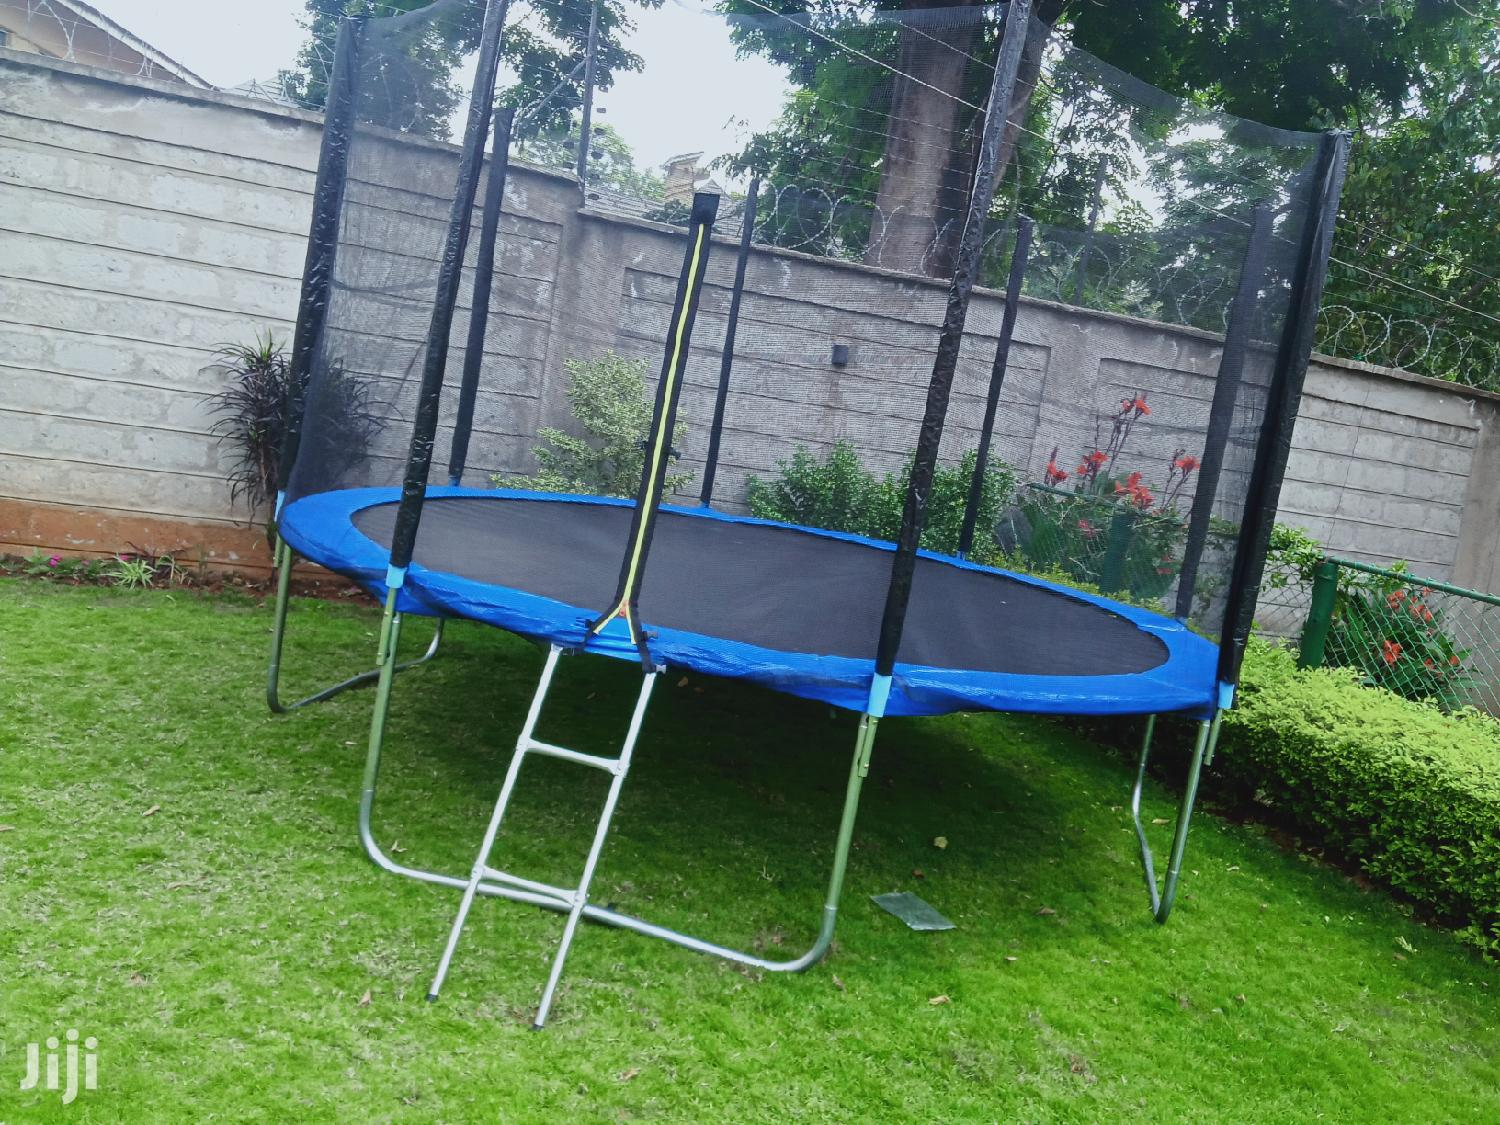 Trampolines For Children 10ft,12ft,14ft,16ft